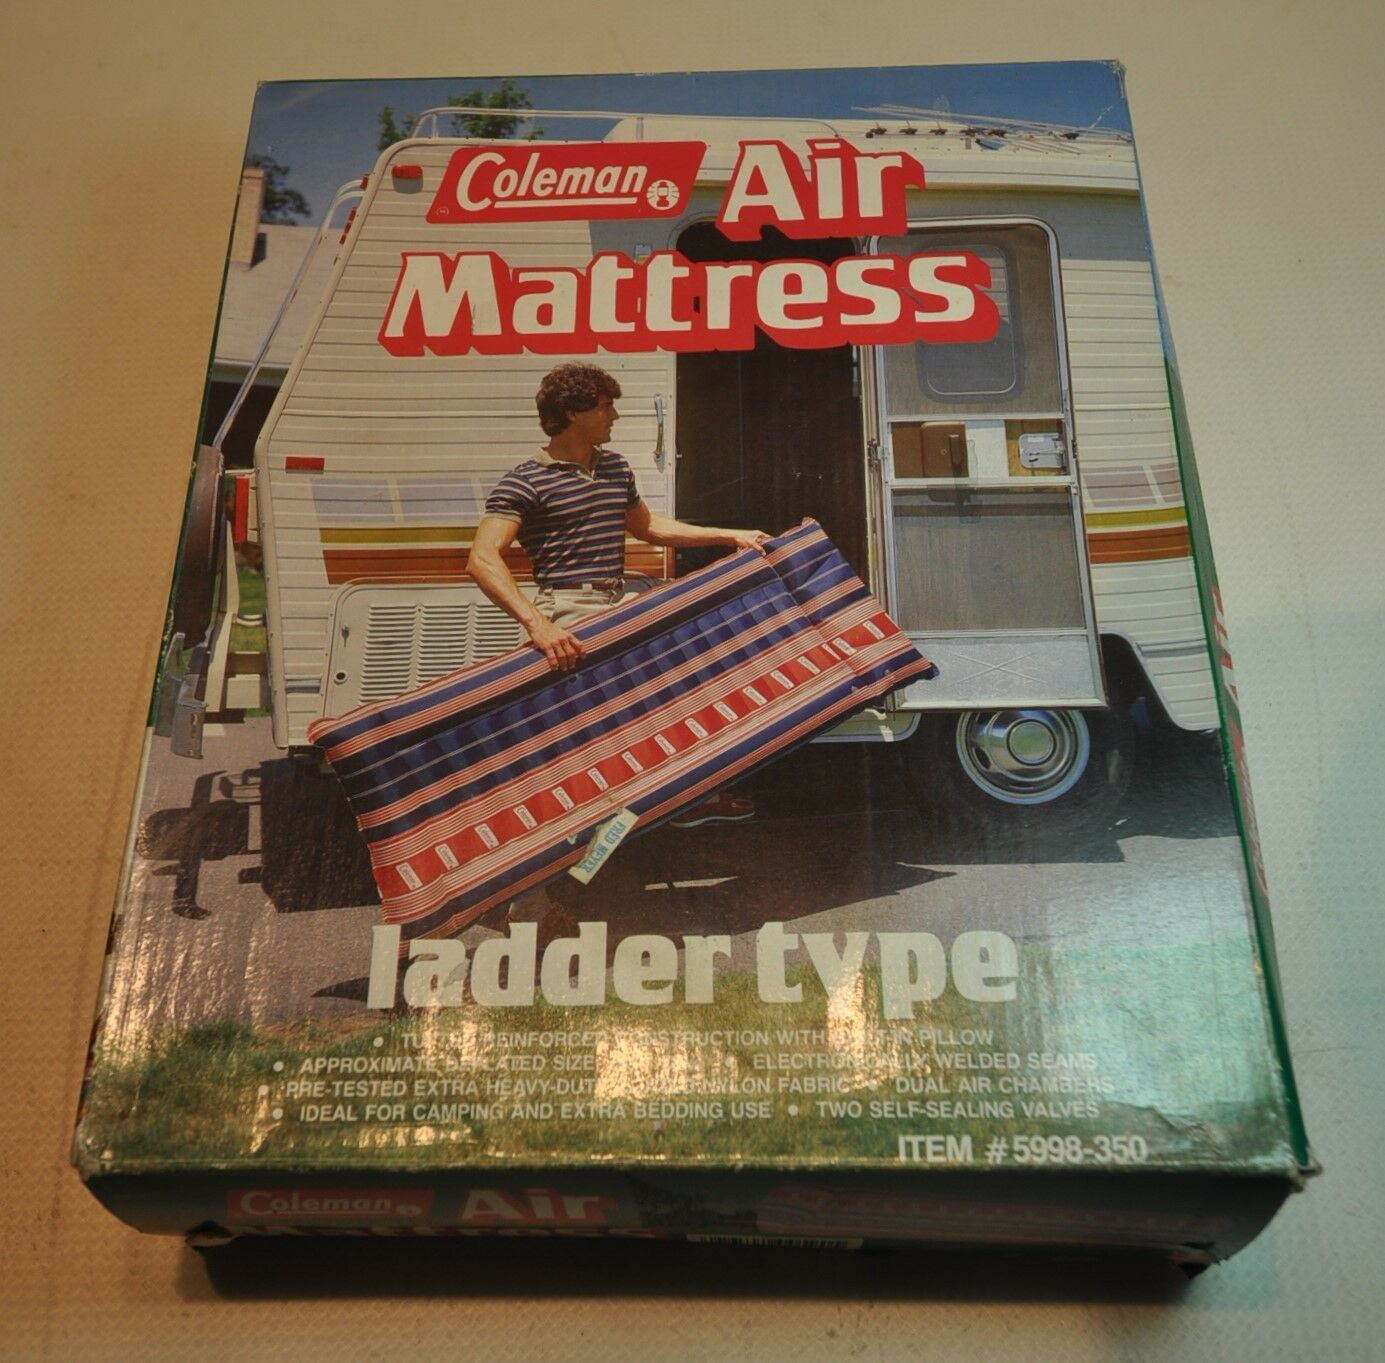 Vintage Coleman Red White bluee Air Mattress Camping Ladder Type  Retro 5998-350  official website